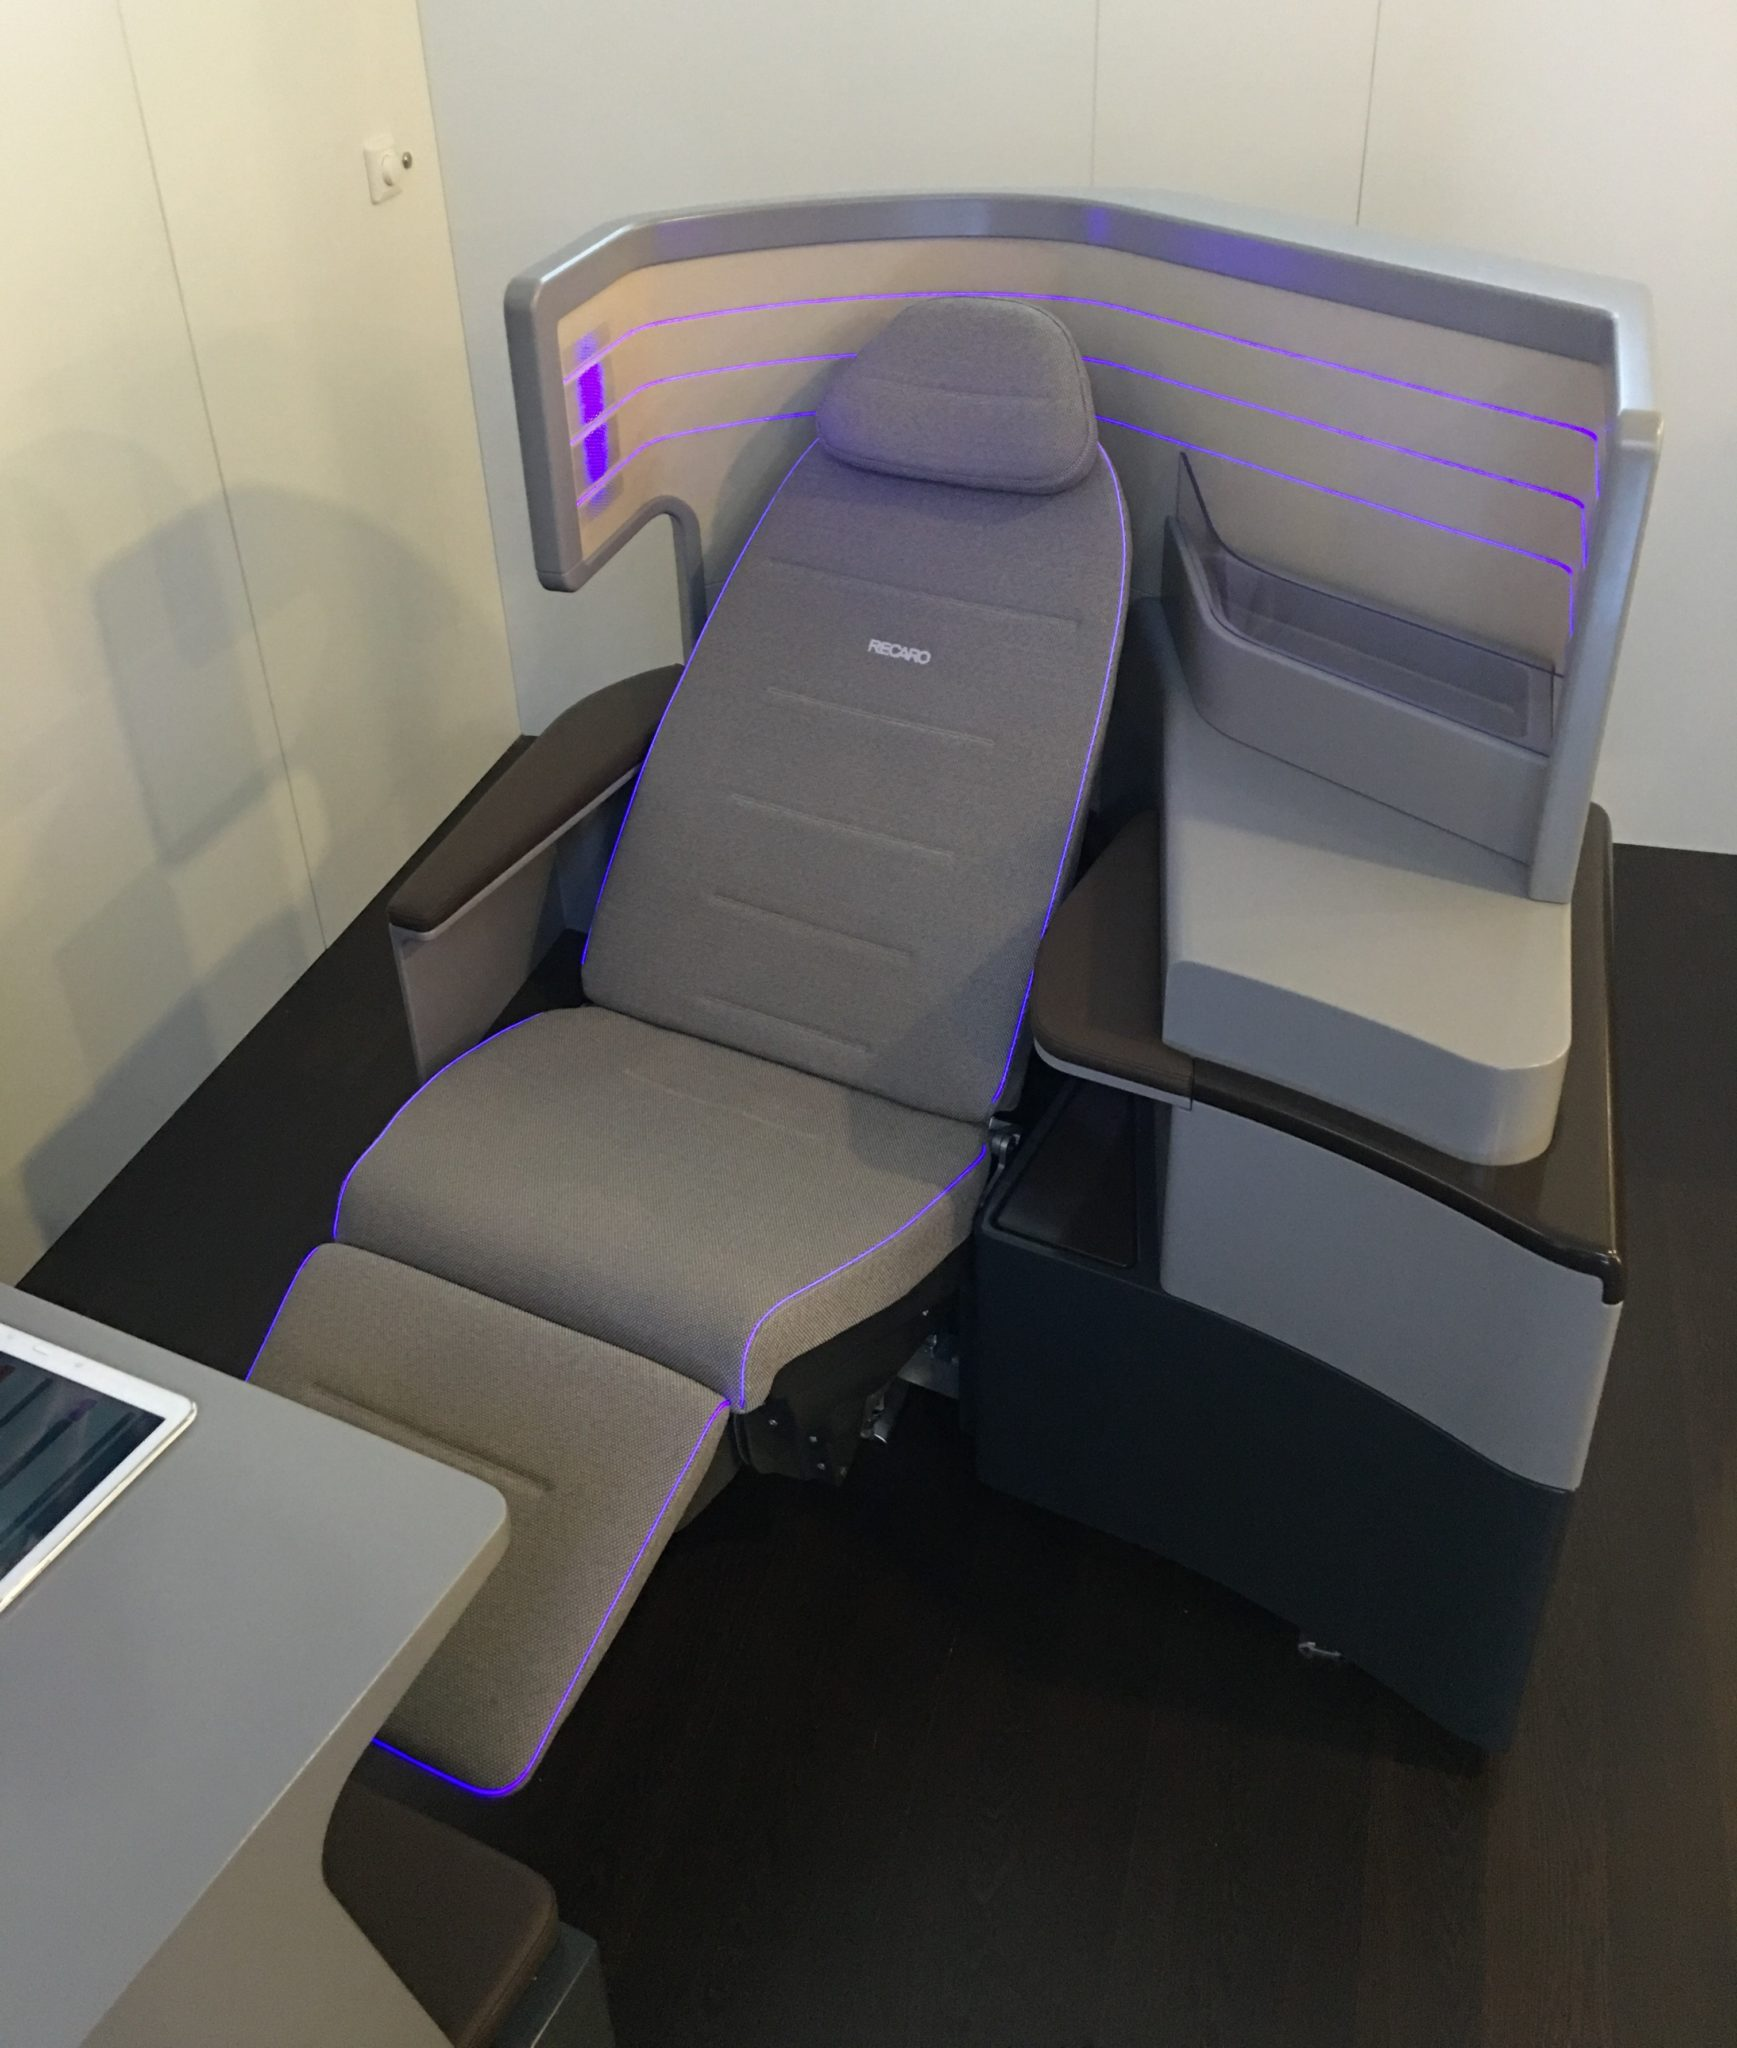 Recaro's business class seat innovations this year were evolutions on the CL6710 product. Image: John Walton